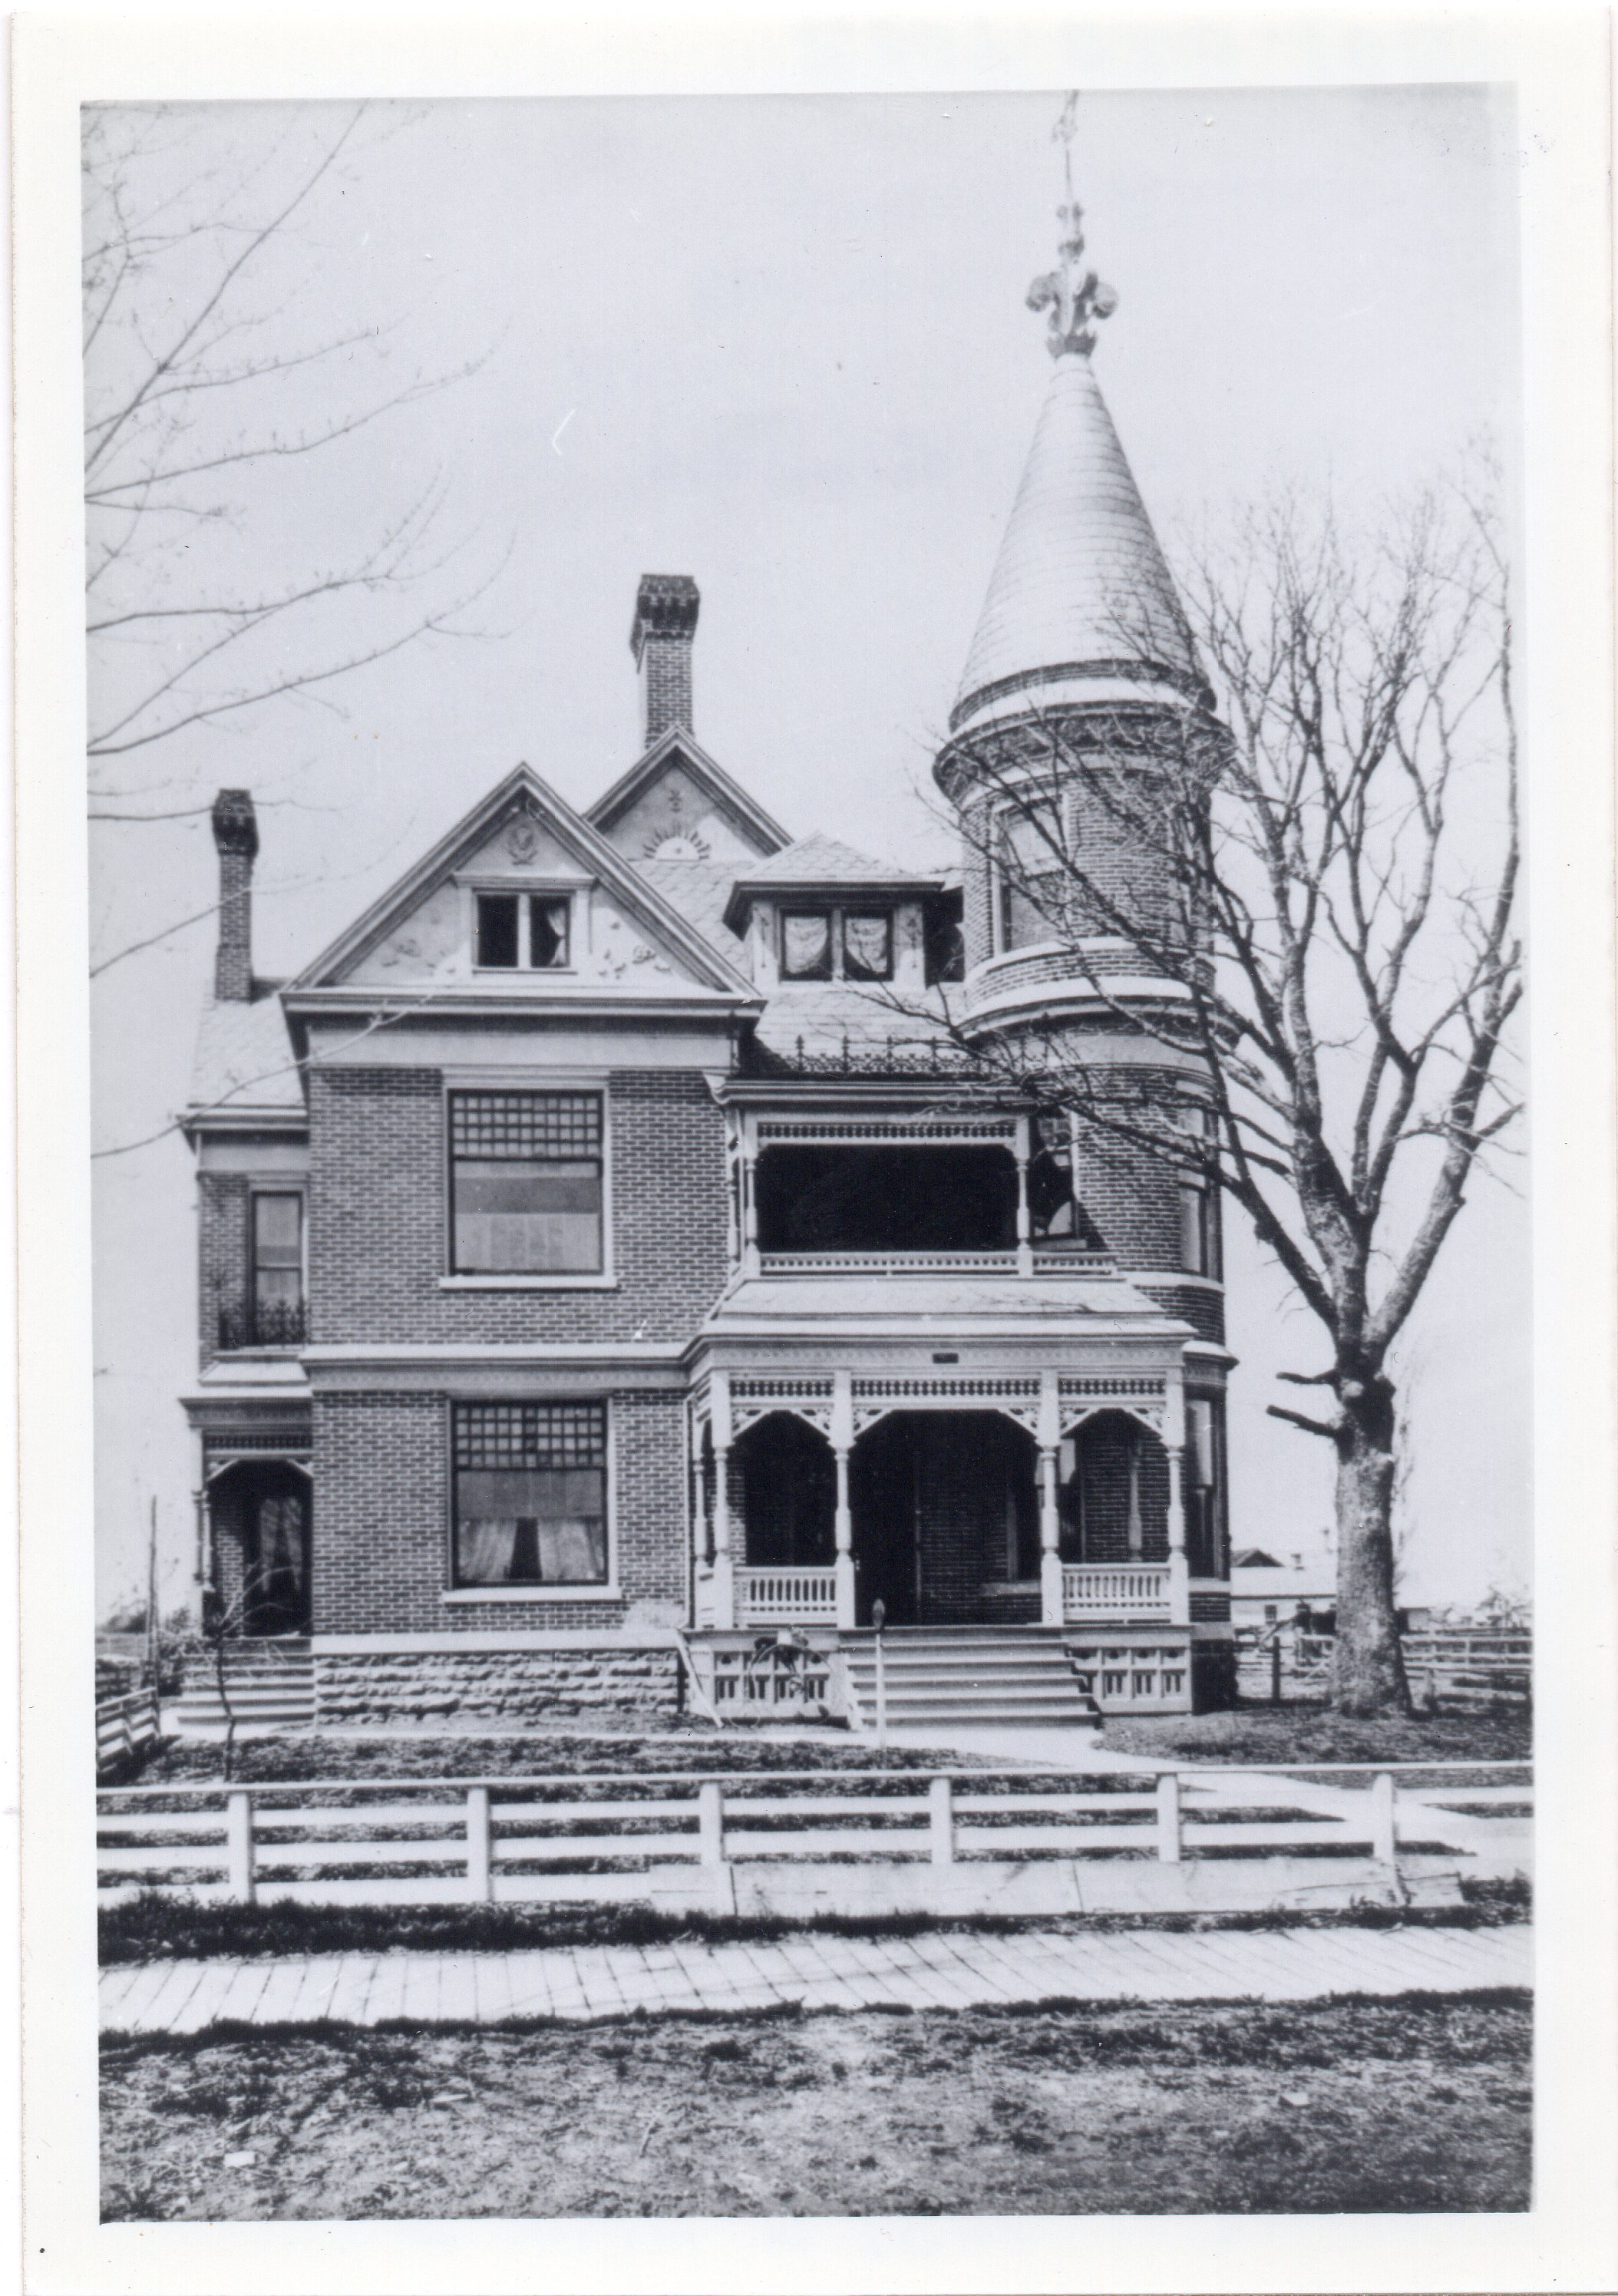 1889 (South Main Street Collection)